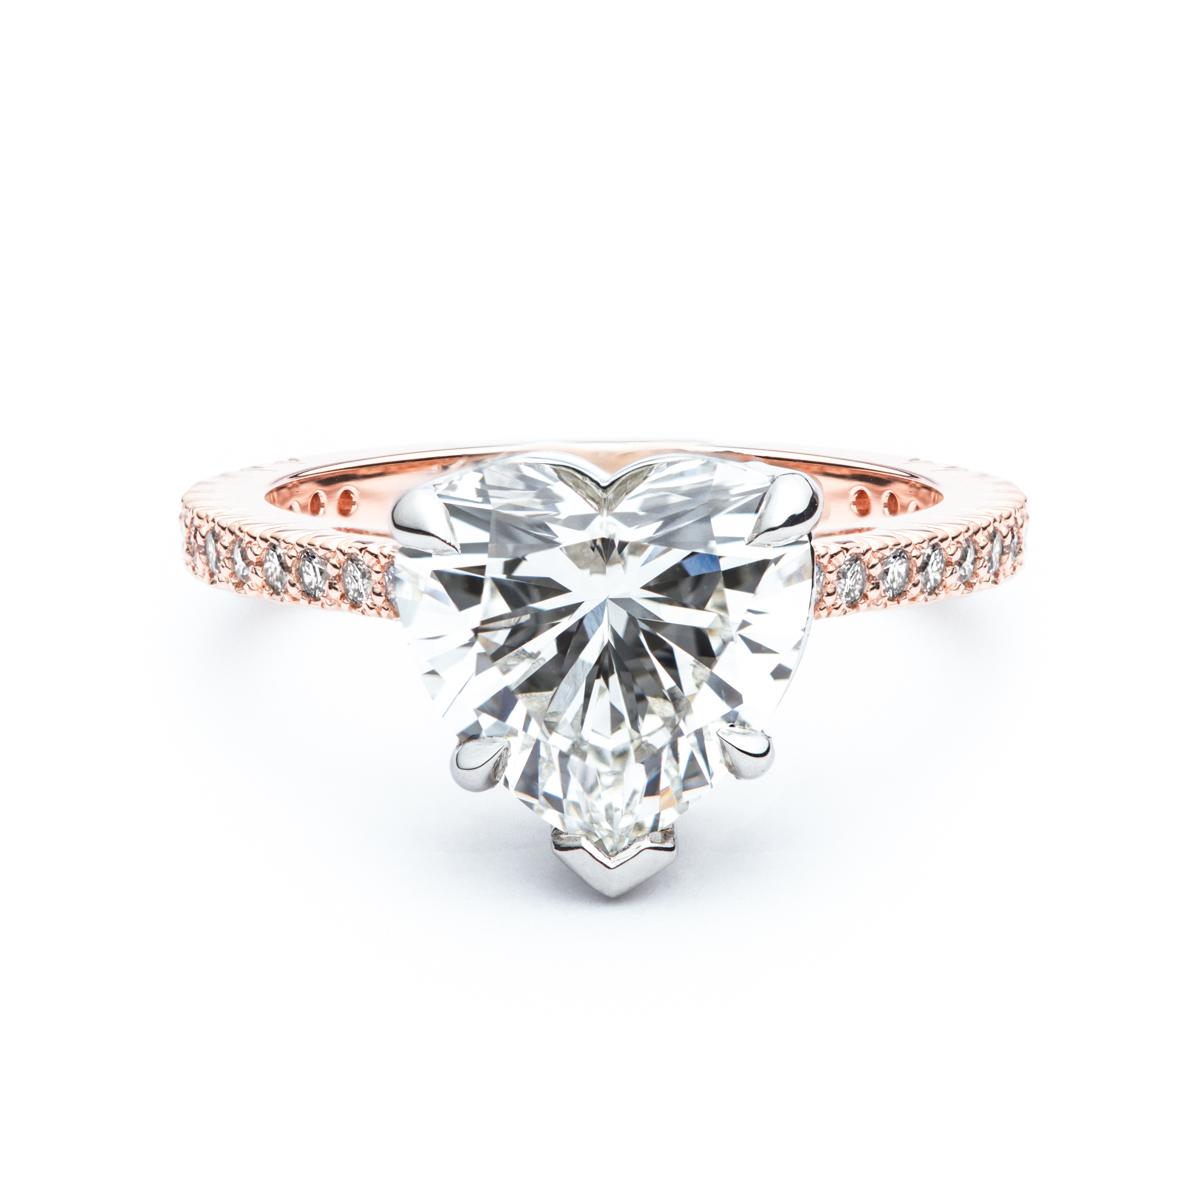 The Rose Heart Shaped Diamond Ring Jm Edwards Jewelry